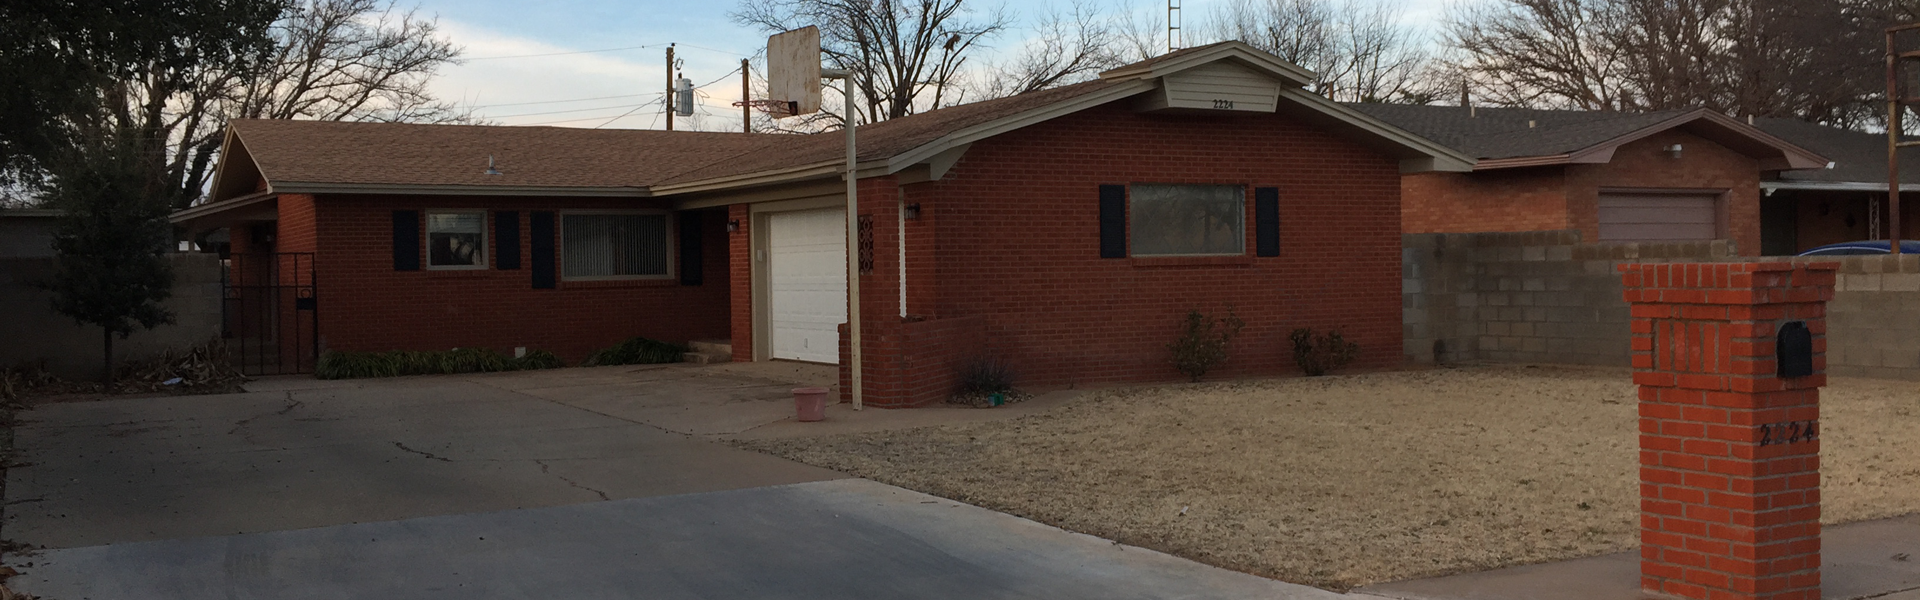 Home for sale in Lamesa Texas